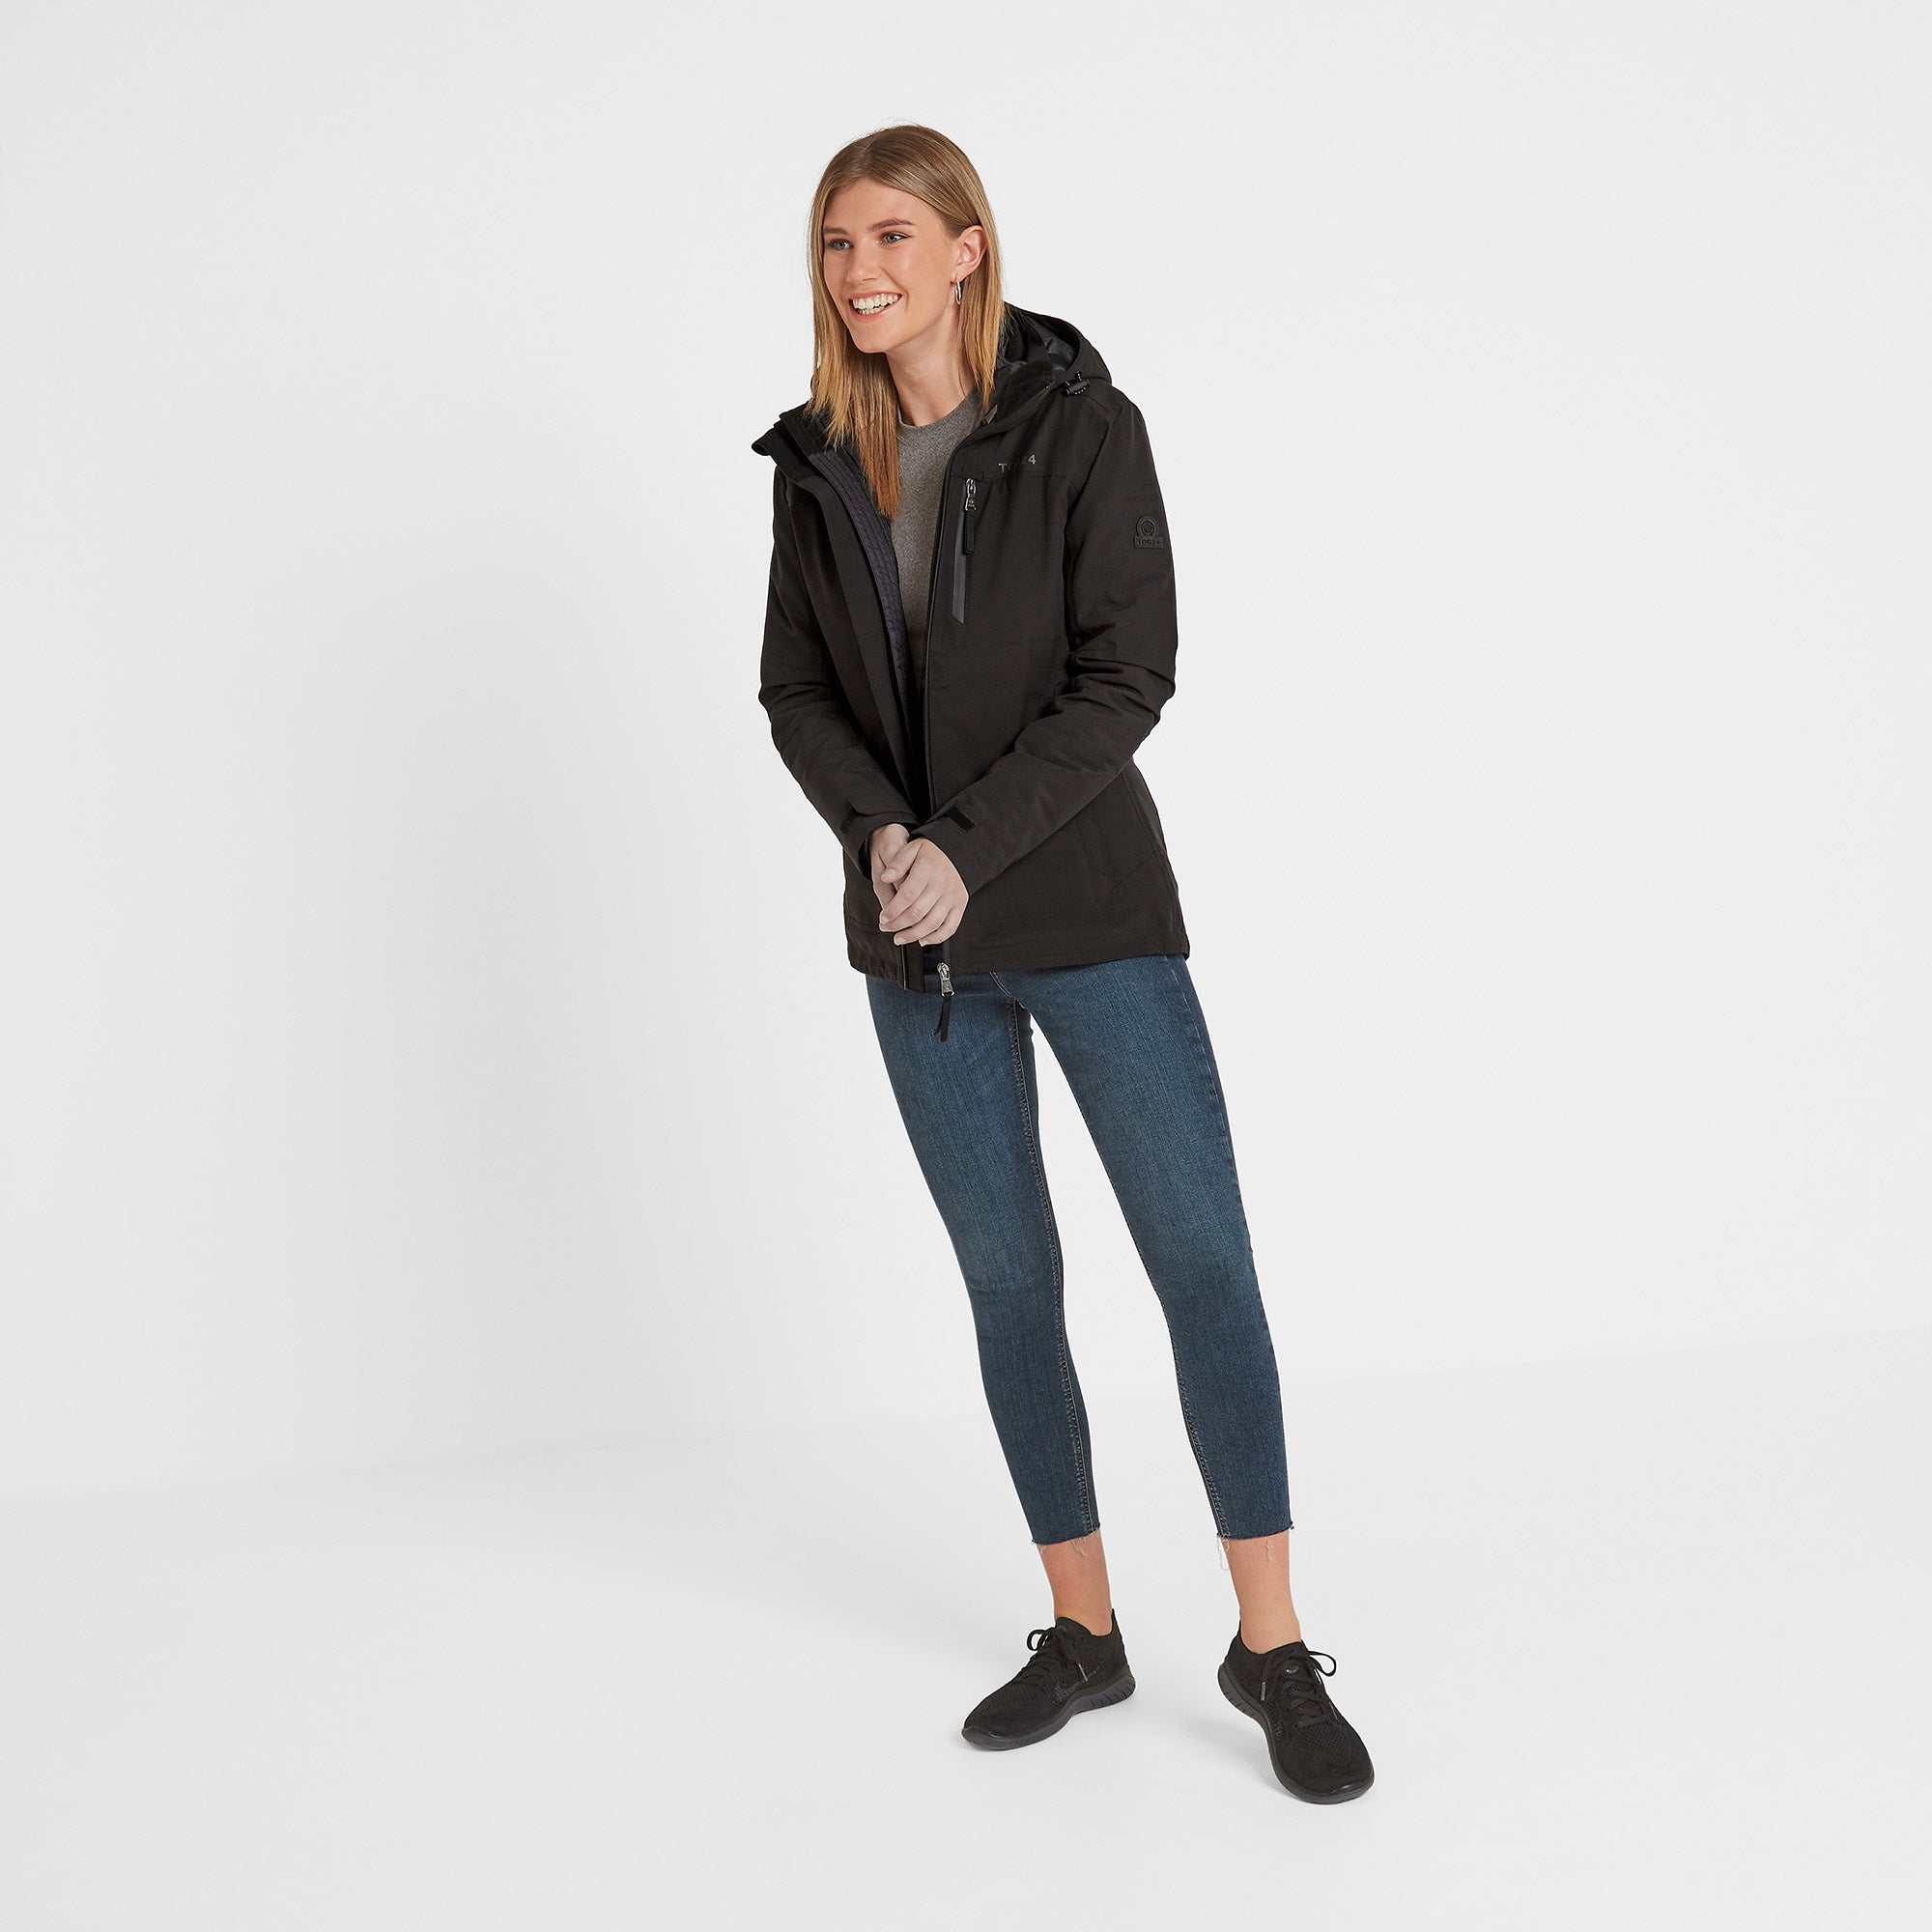 Beverley Womens Waterproof 3-in-1 Jacket - Black